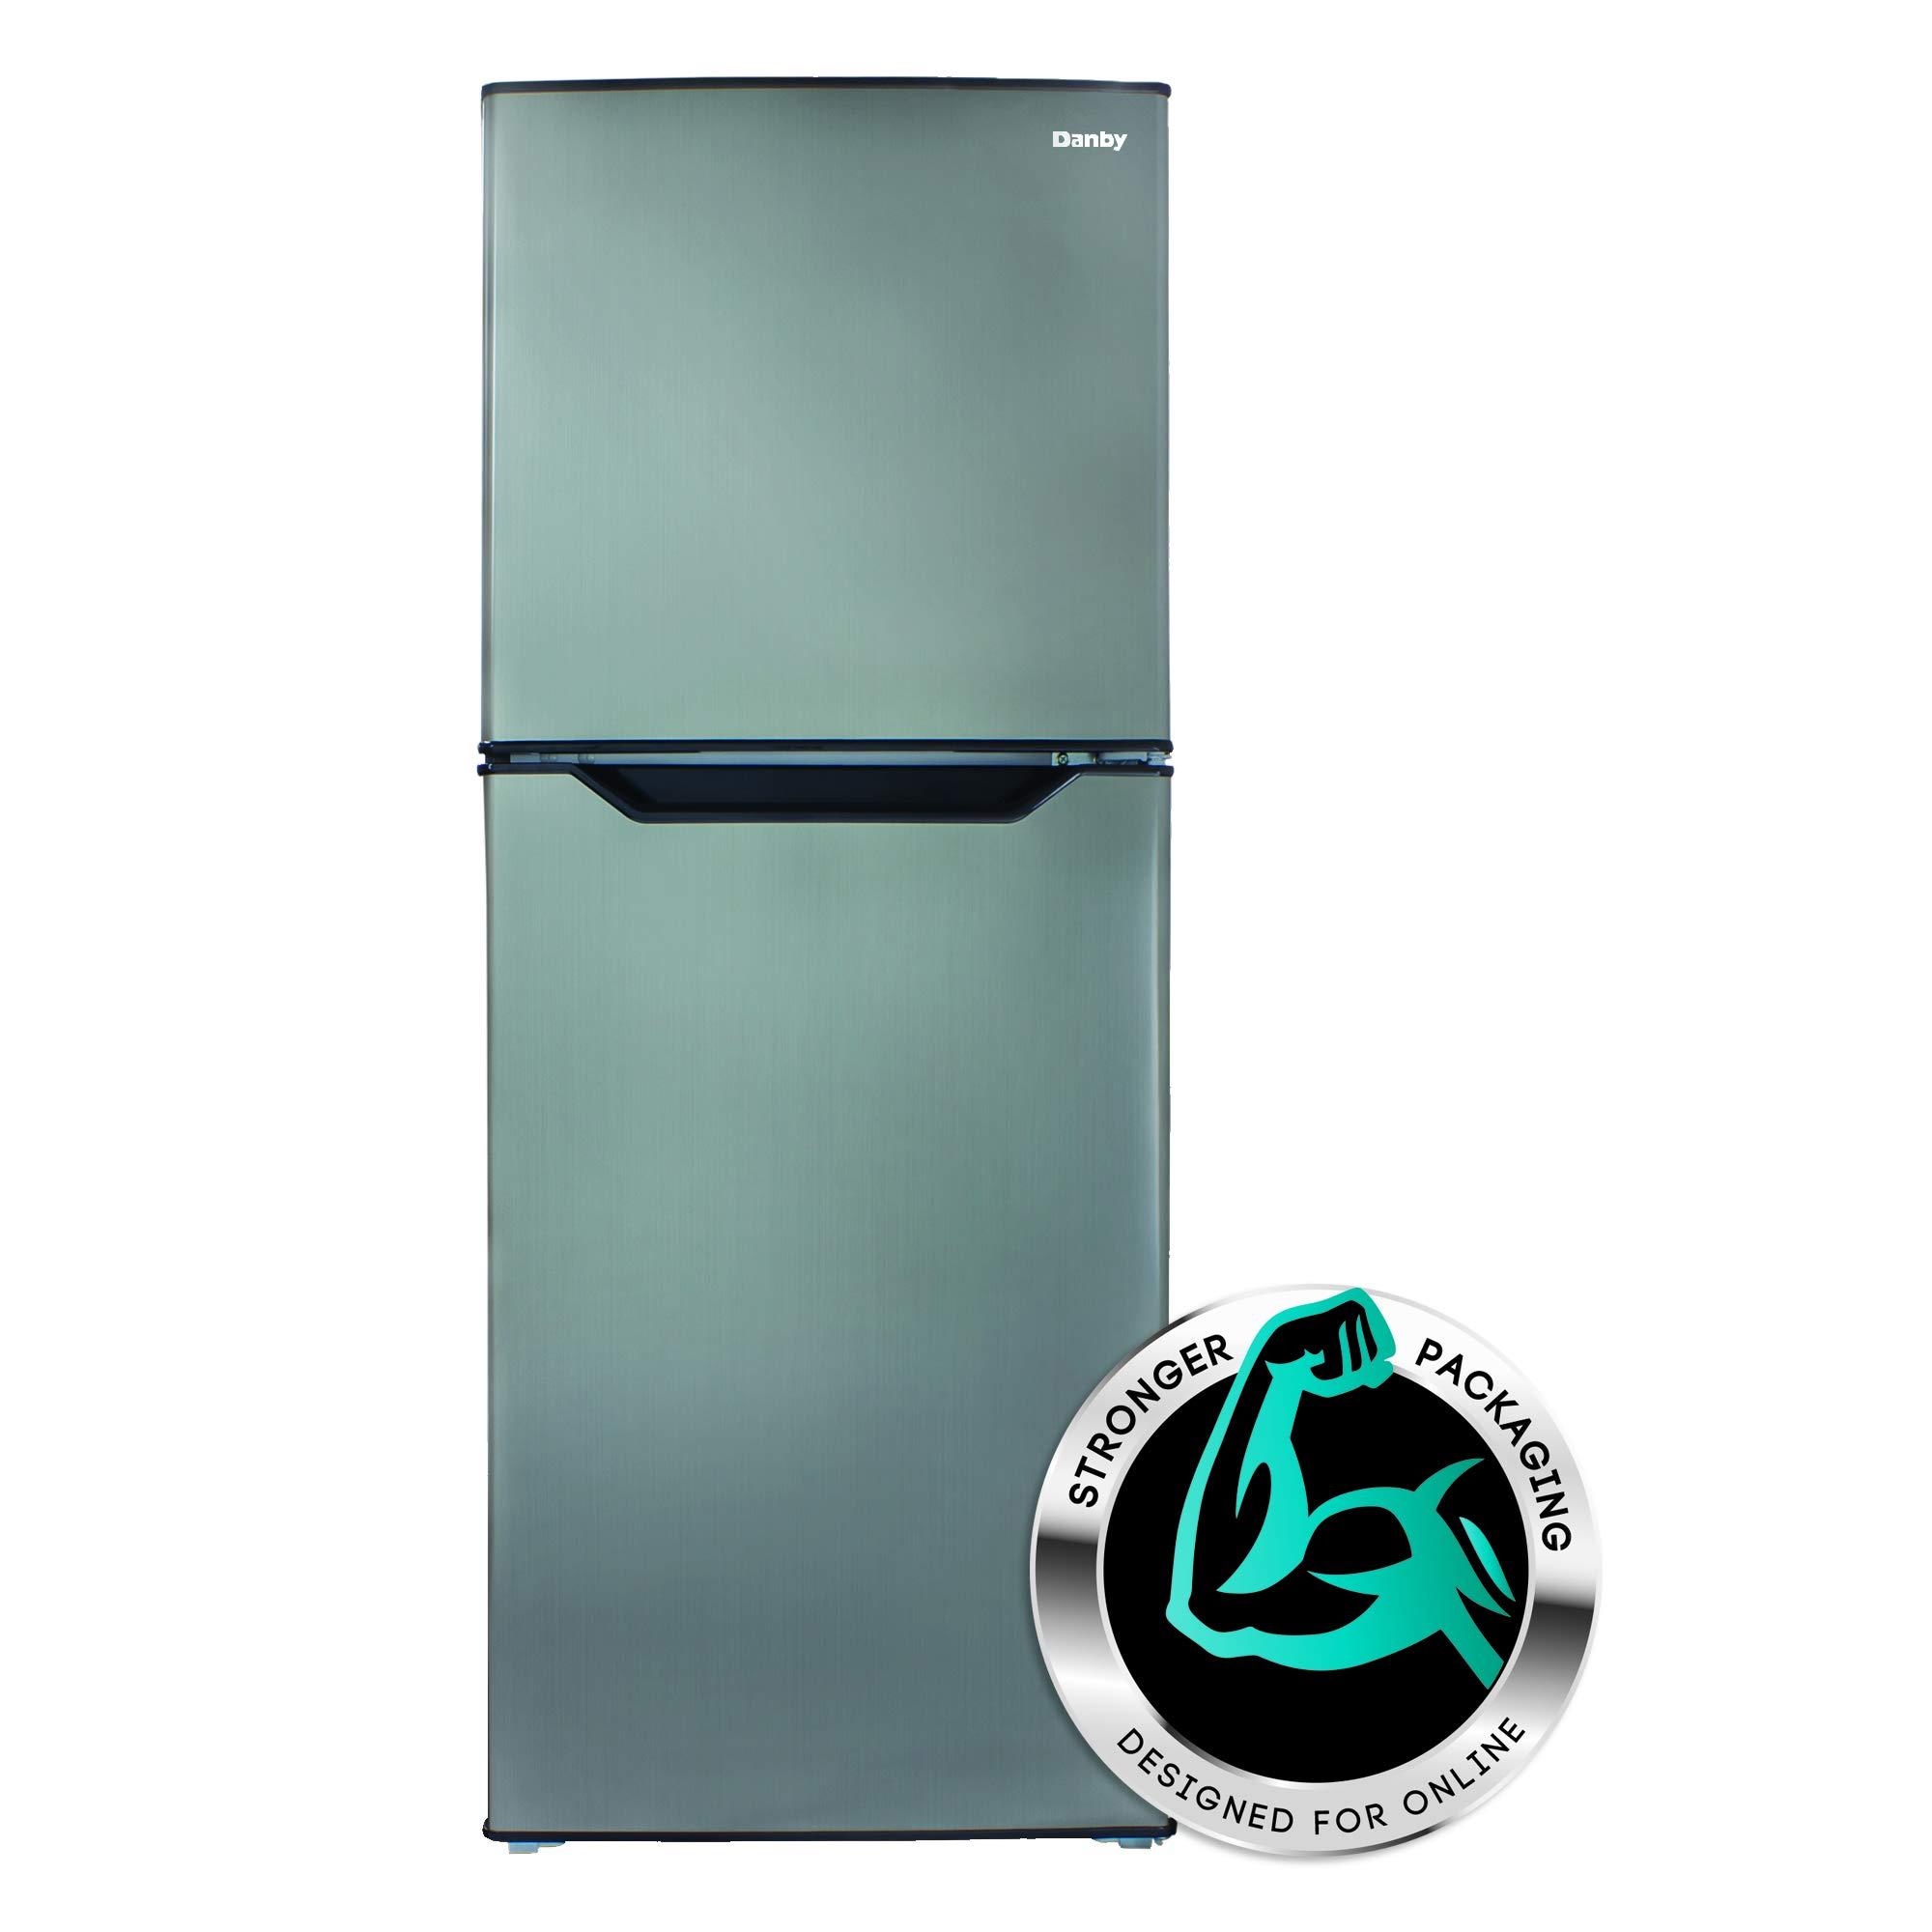 Danby DFF070B1BSLDB-6 7.0 Cubic Foot Mid-Size Refrigerator-Black Stainless Look by Danby